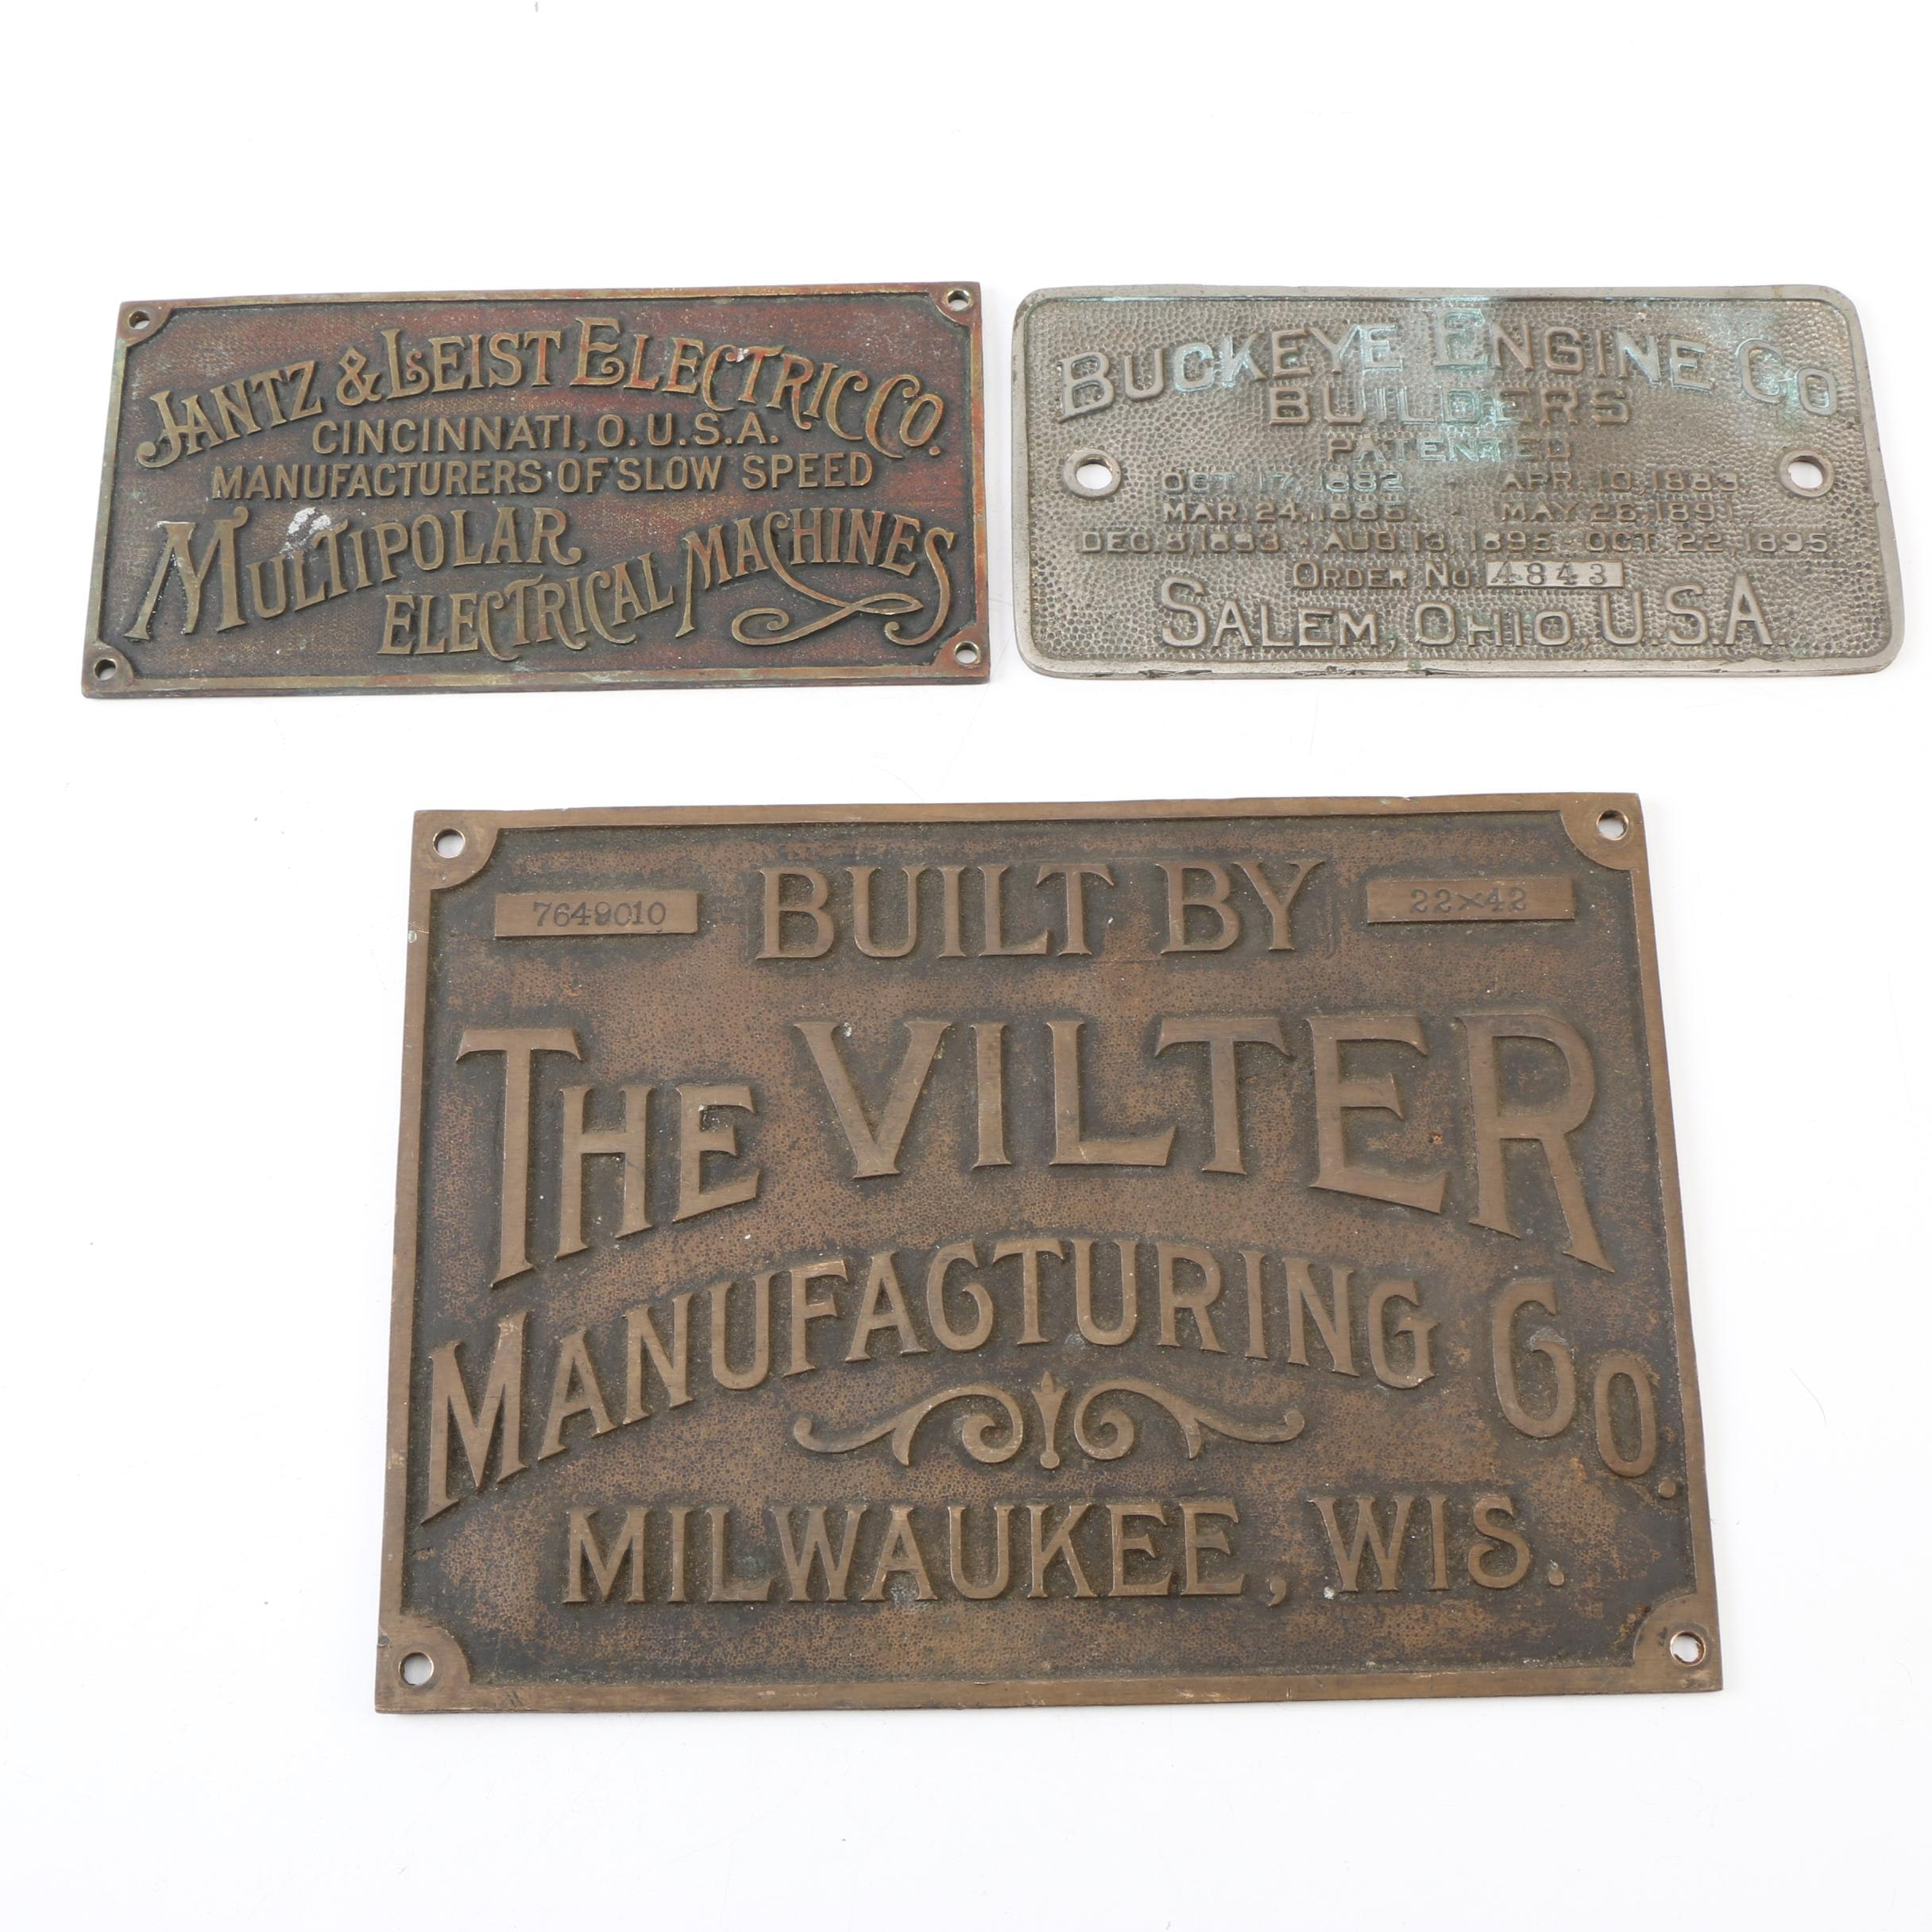 Jantz & Leist Electric Co, Buckeye Engine Co, Vilter Mfg. Co. Metal Name Plates